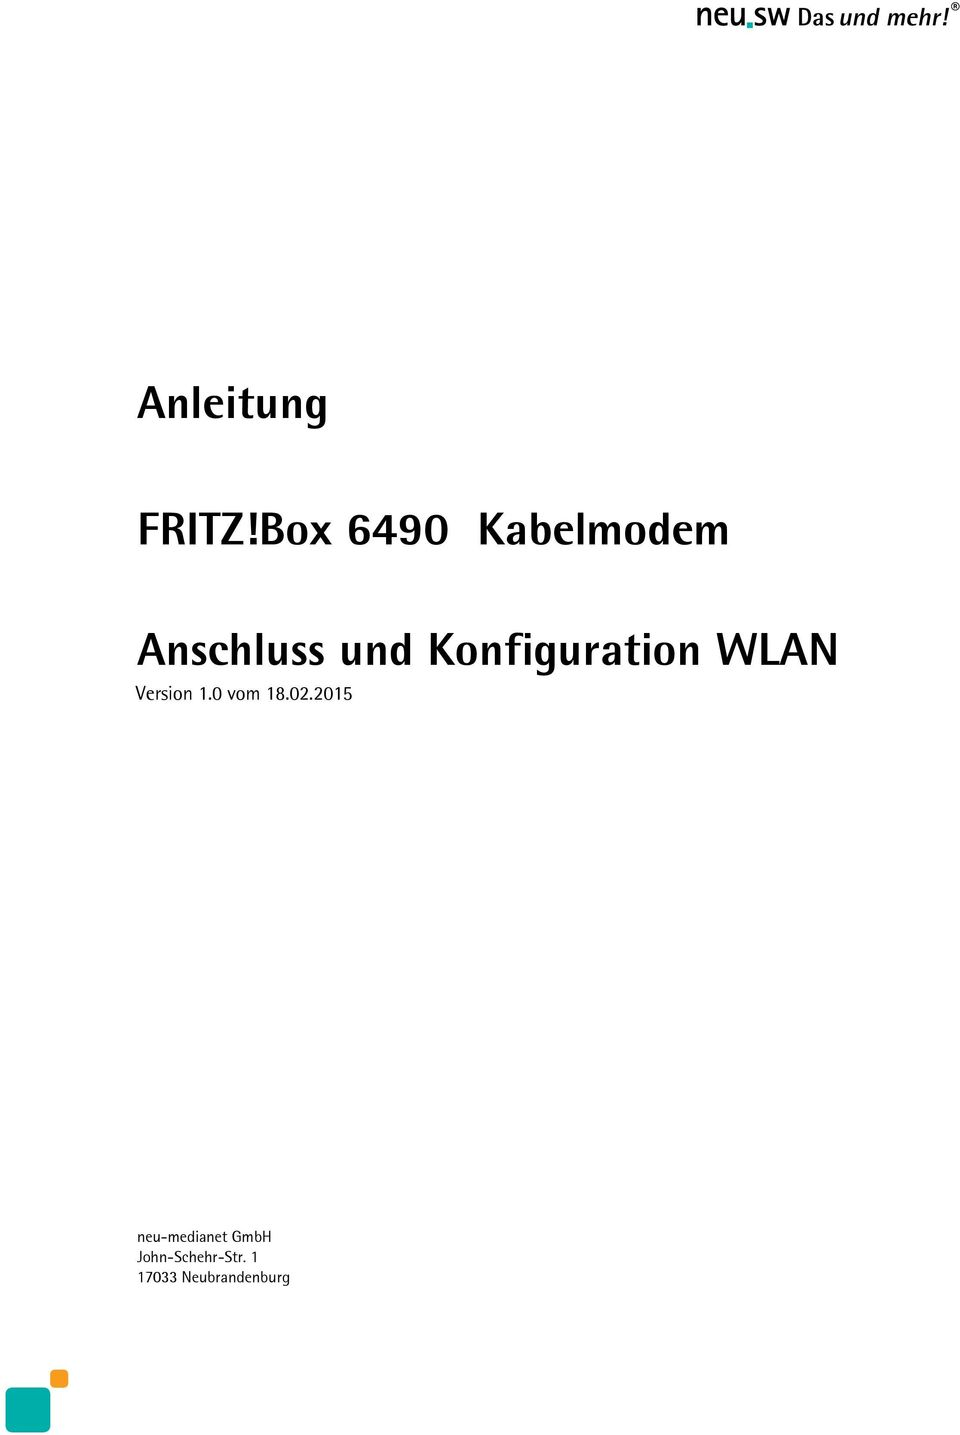 Konfiguration WLAN Version 1.